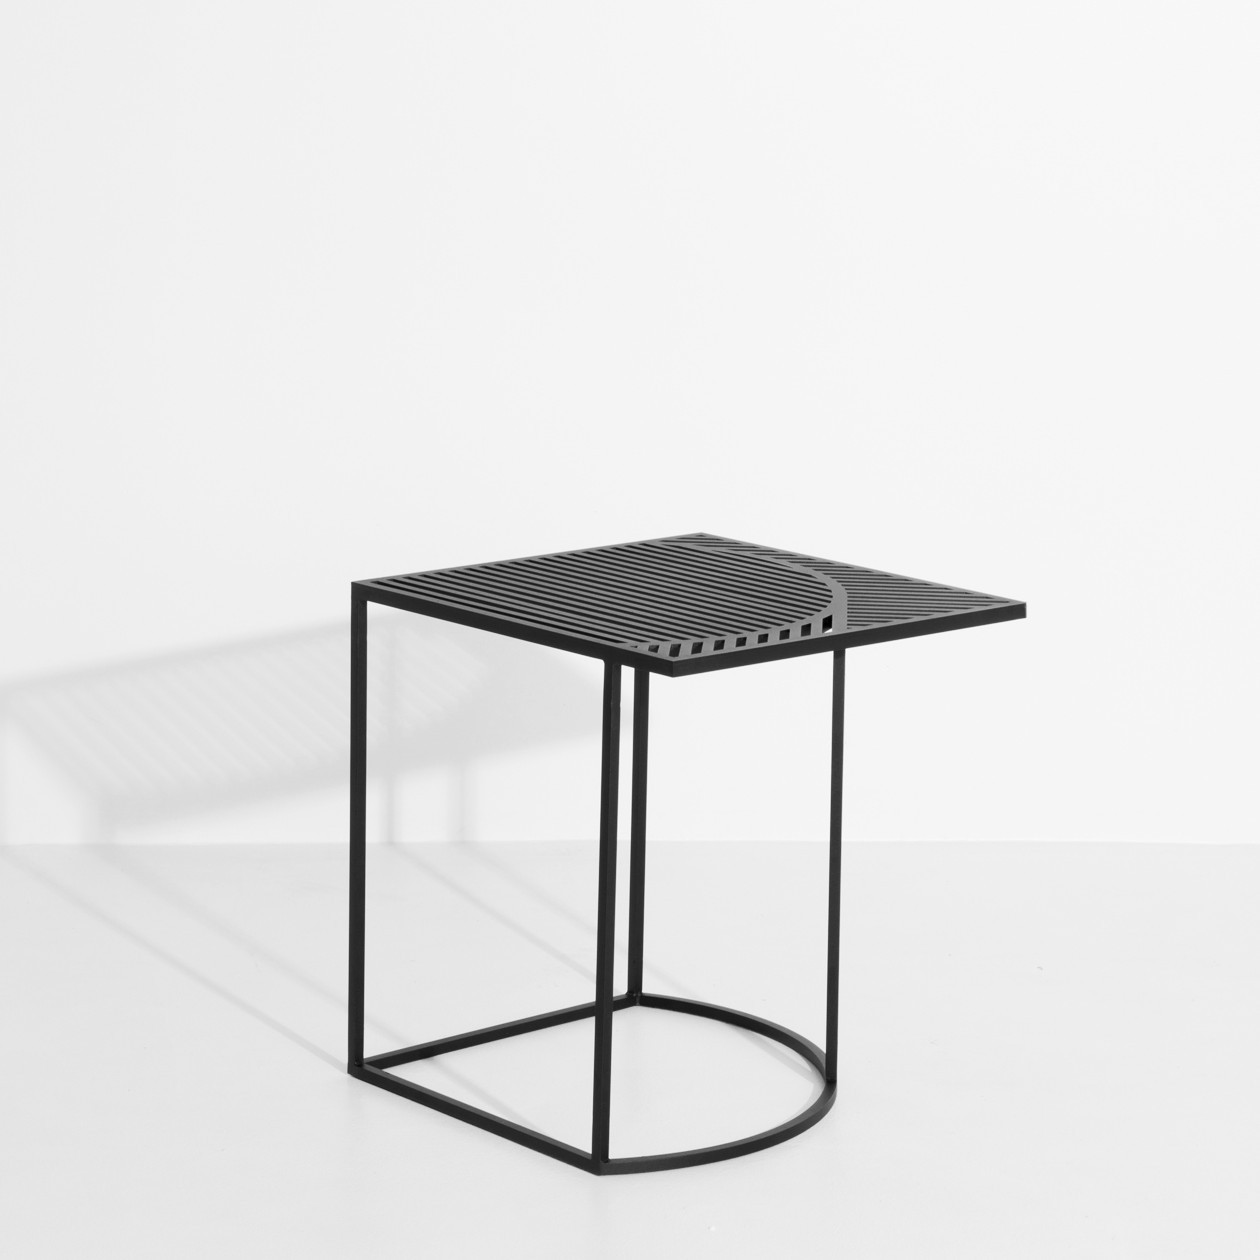 Table d'appoint ISO B noire